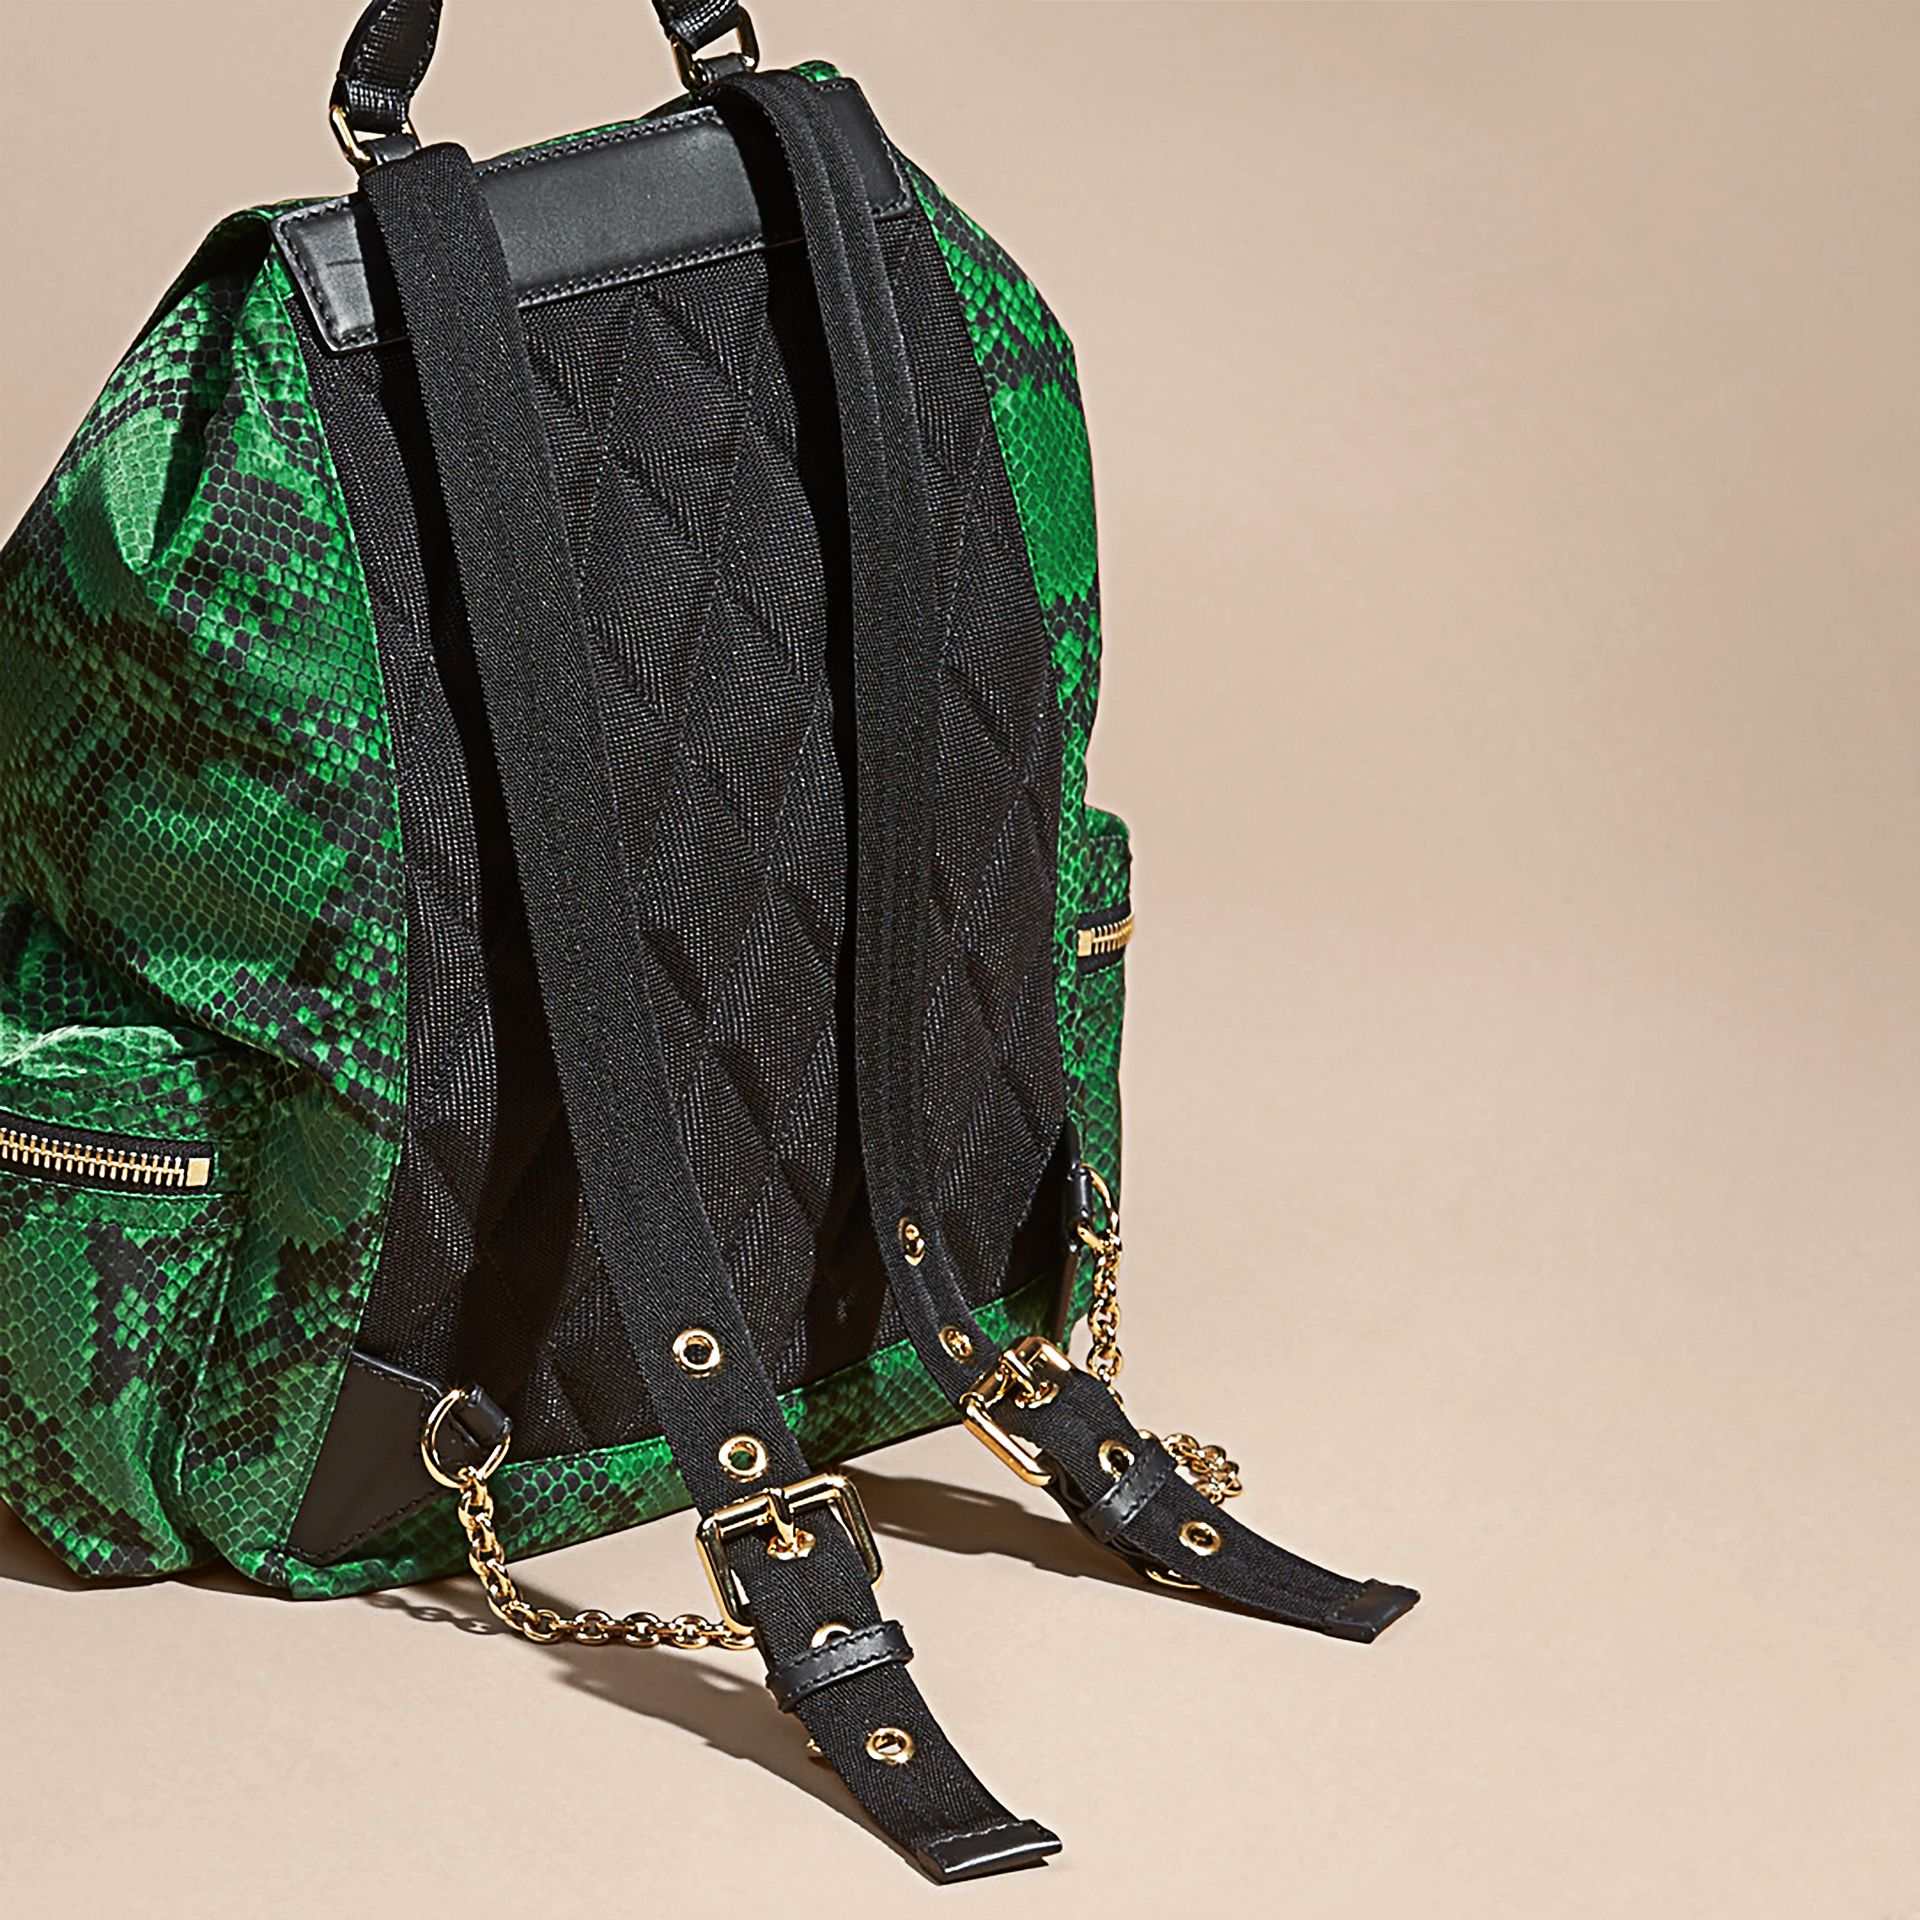 Green The Large Rucksack in Python Print Nylon and Leather Green - gallery image 4